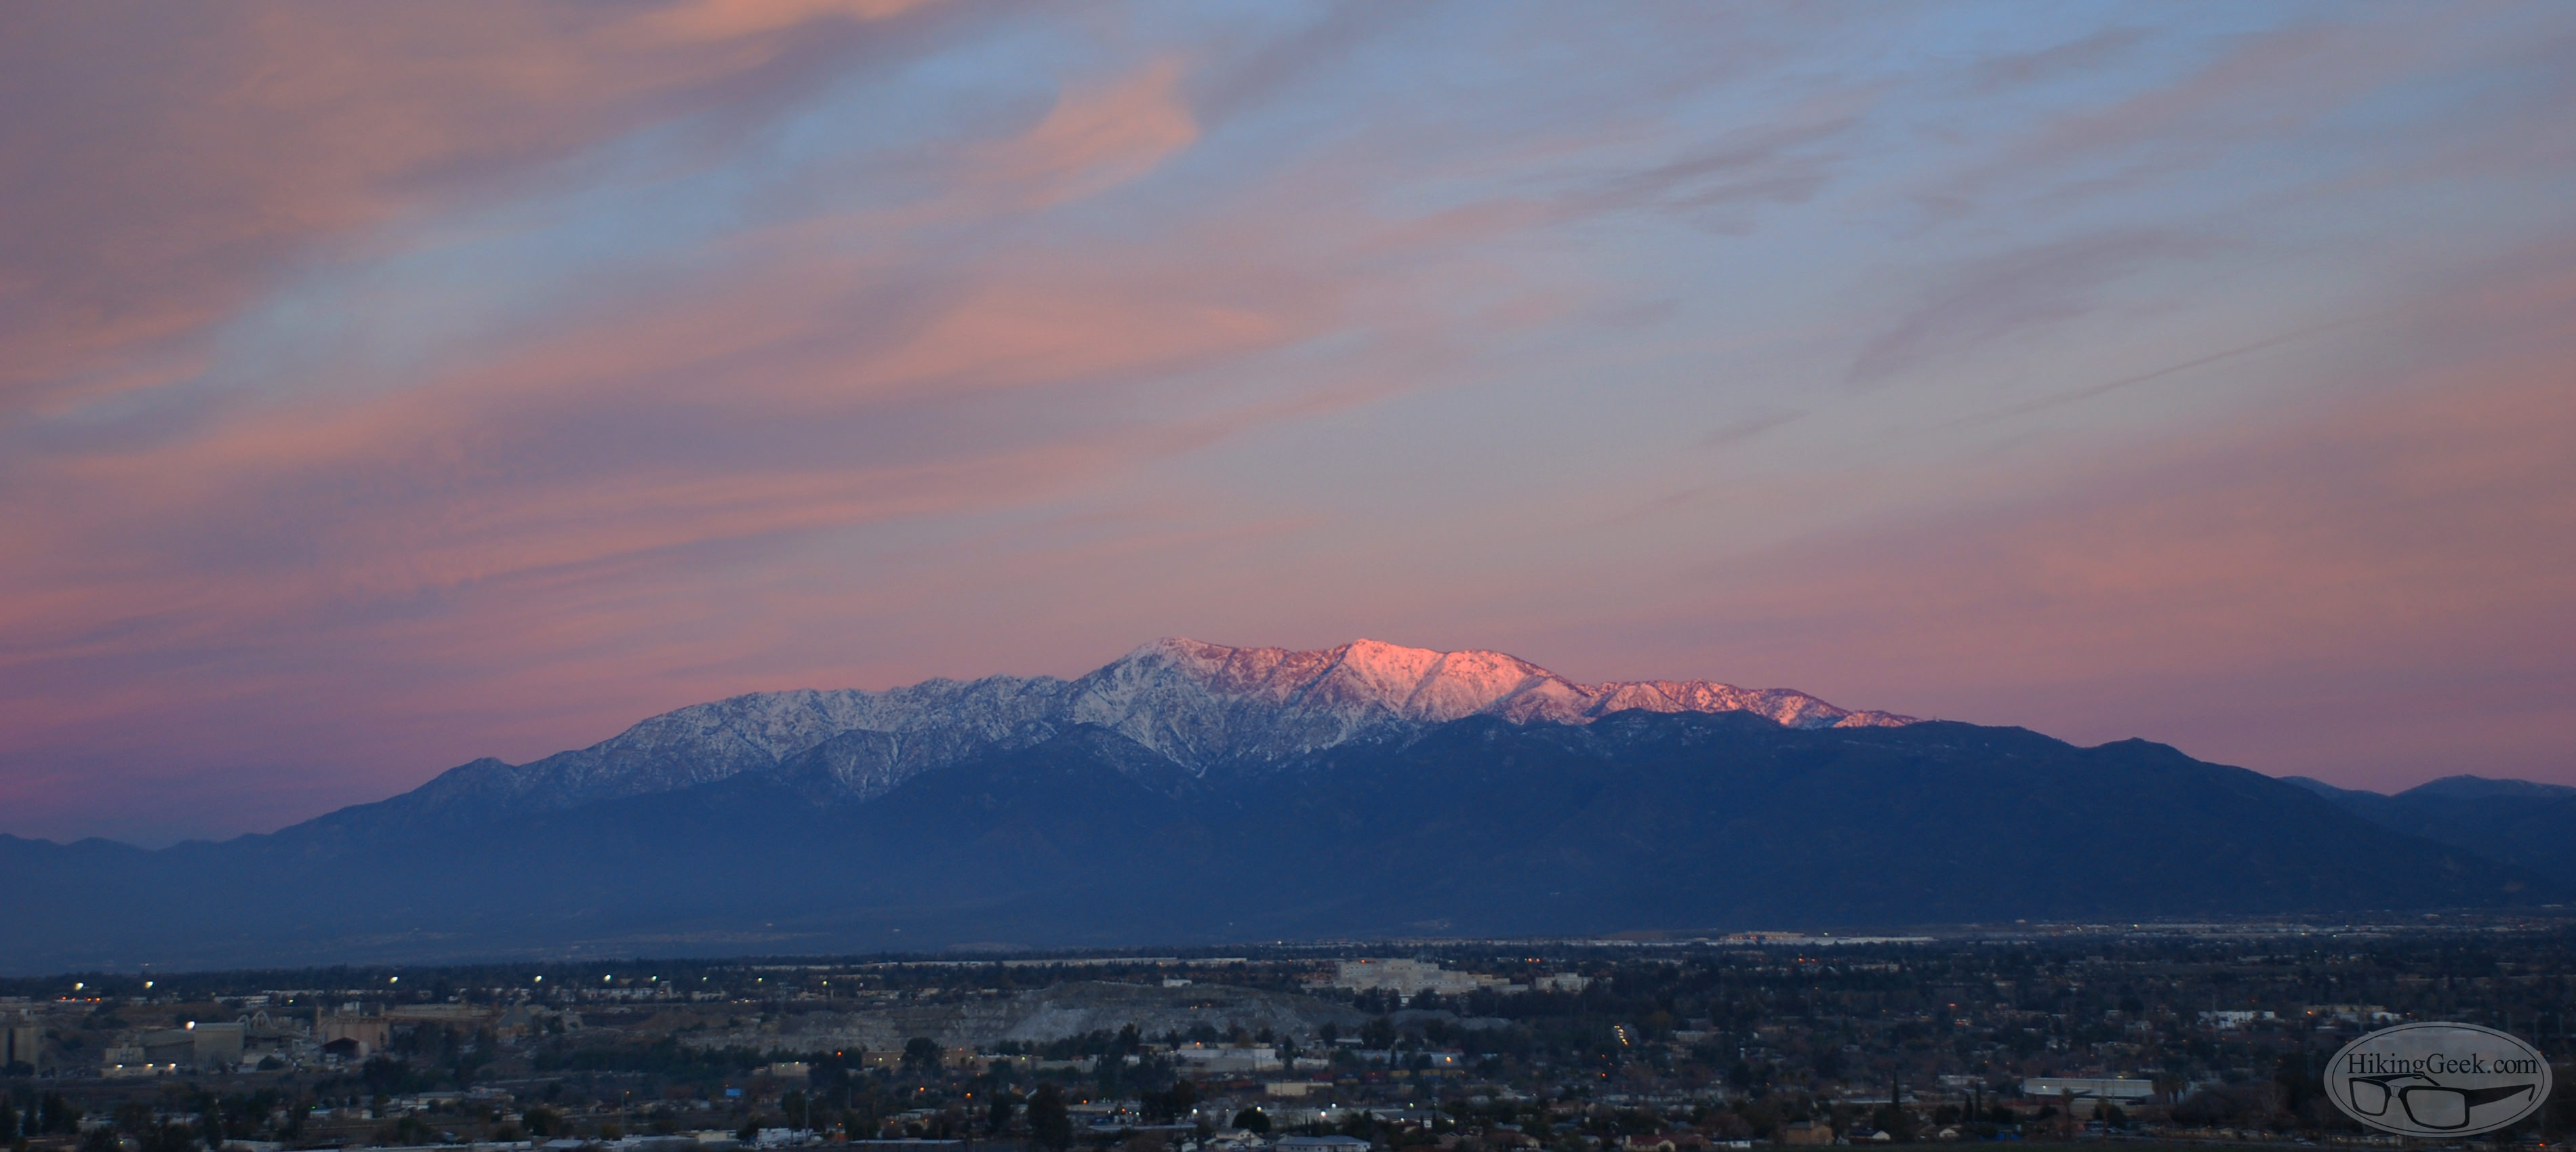 San Gabriel Mountains Time-lapse, January 11 2016